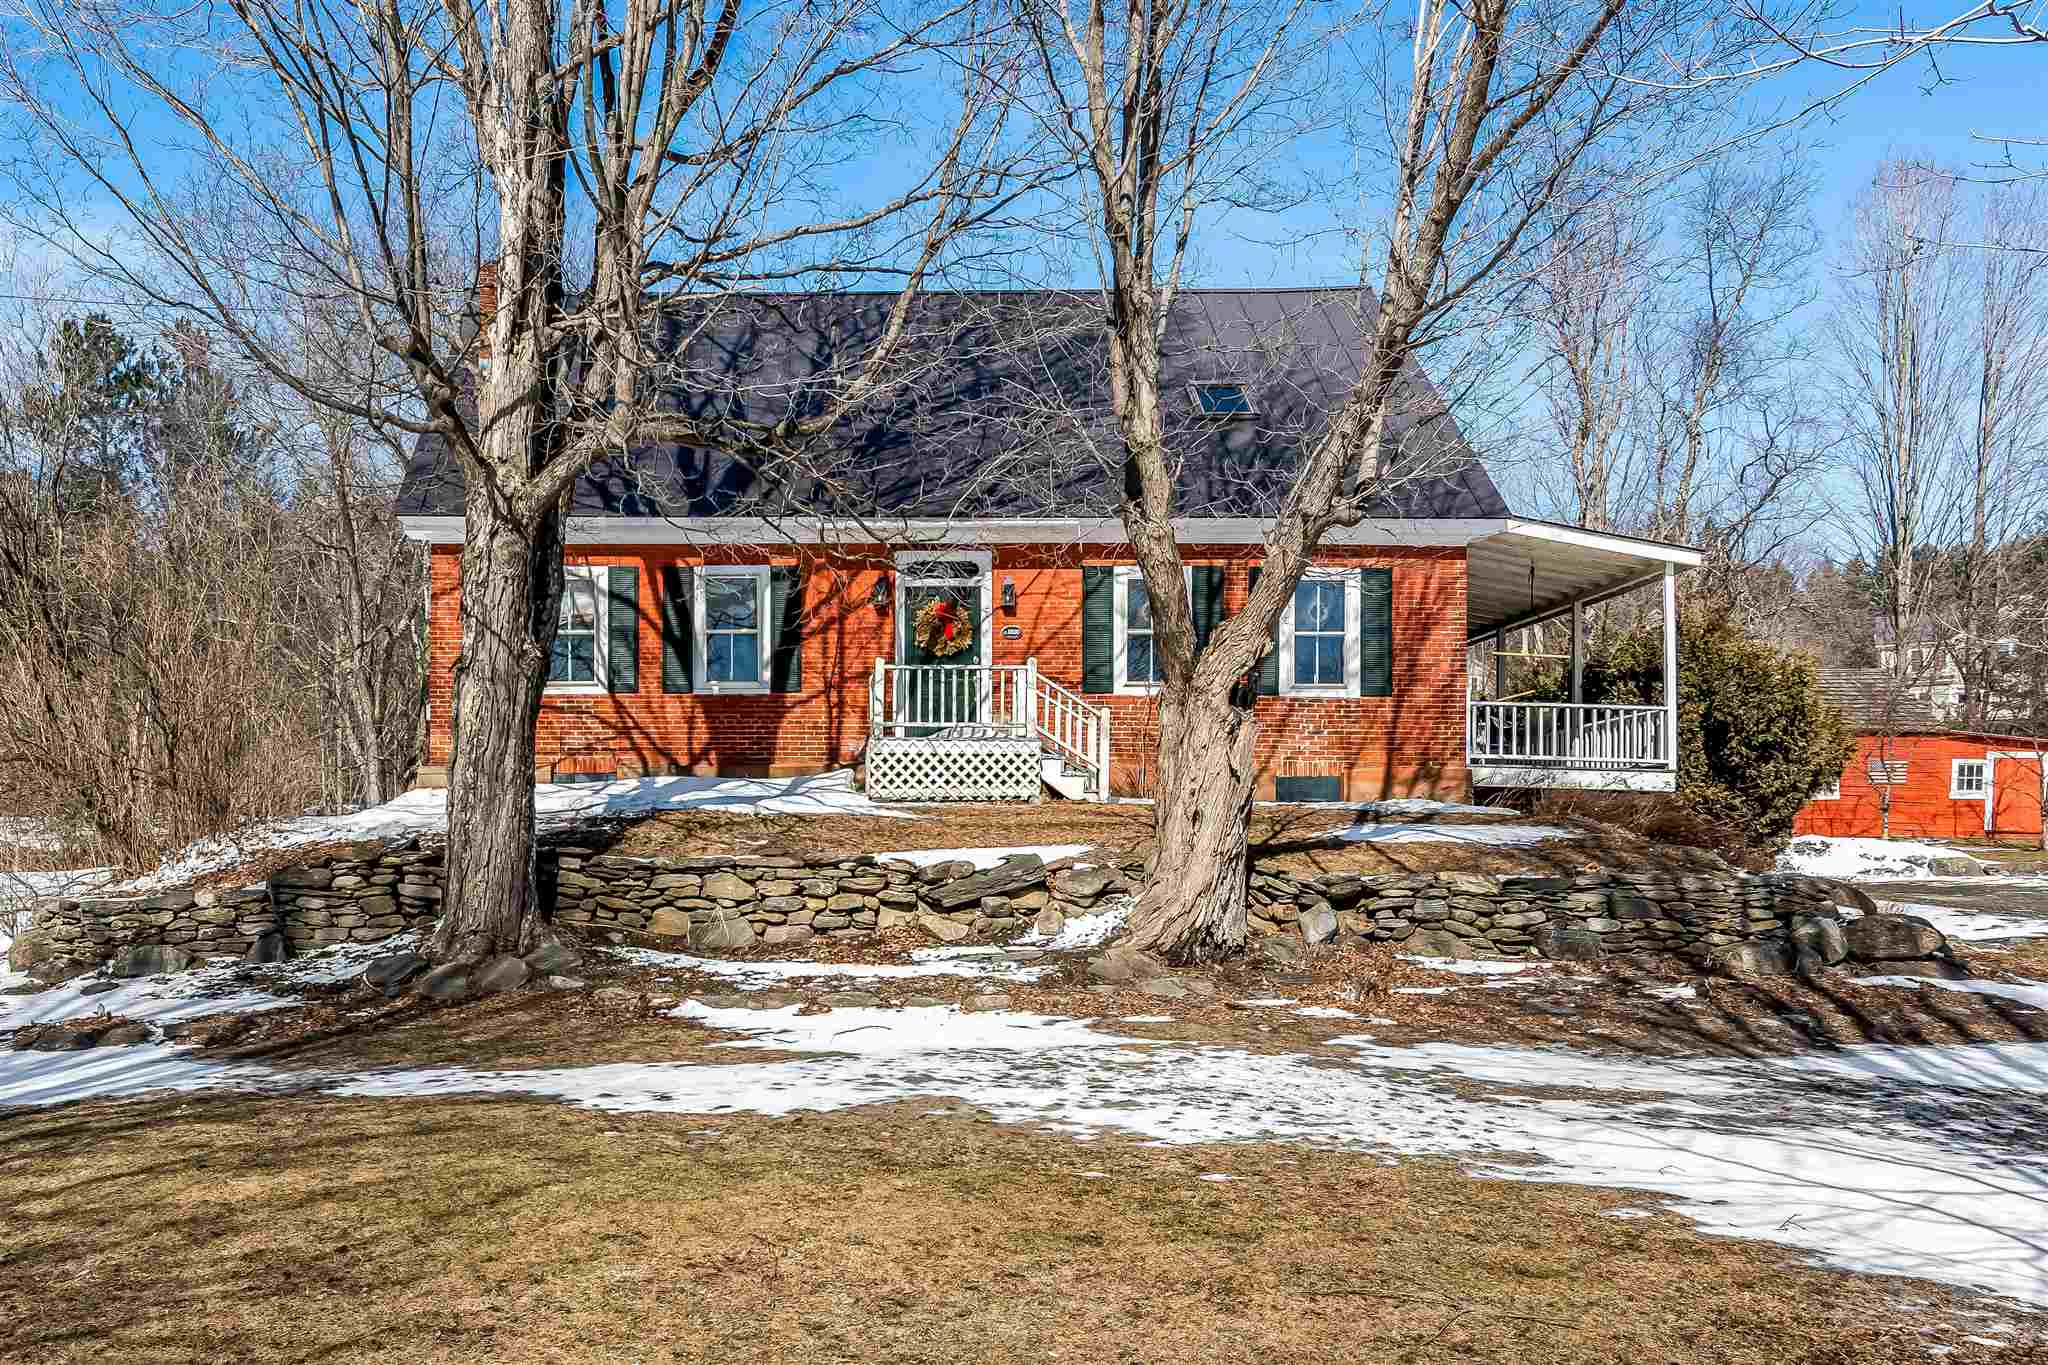 Photo of 3376 Mountain Road Stowe VT 05672